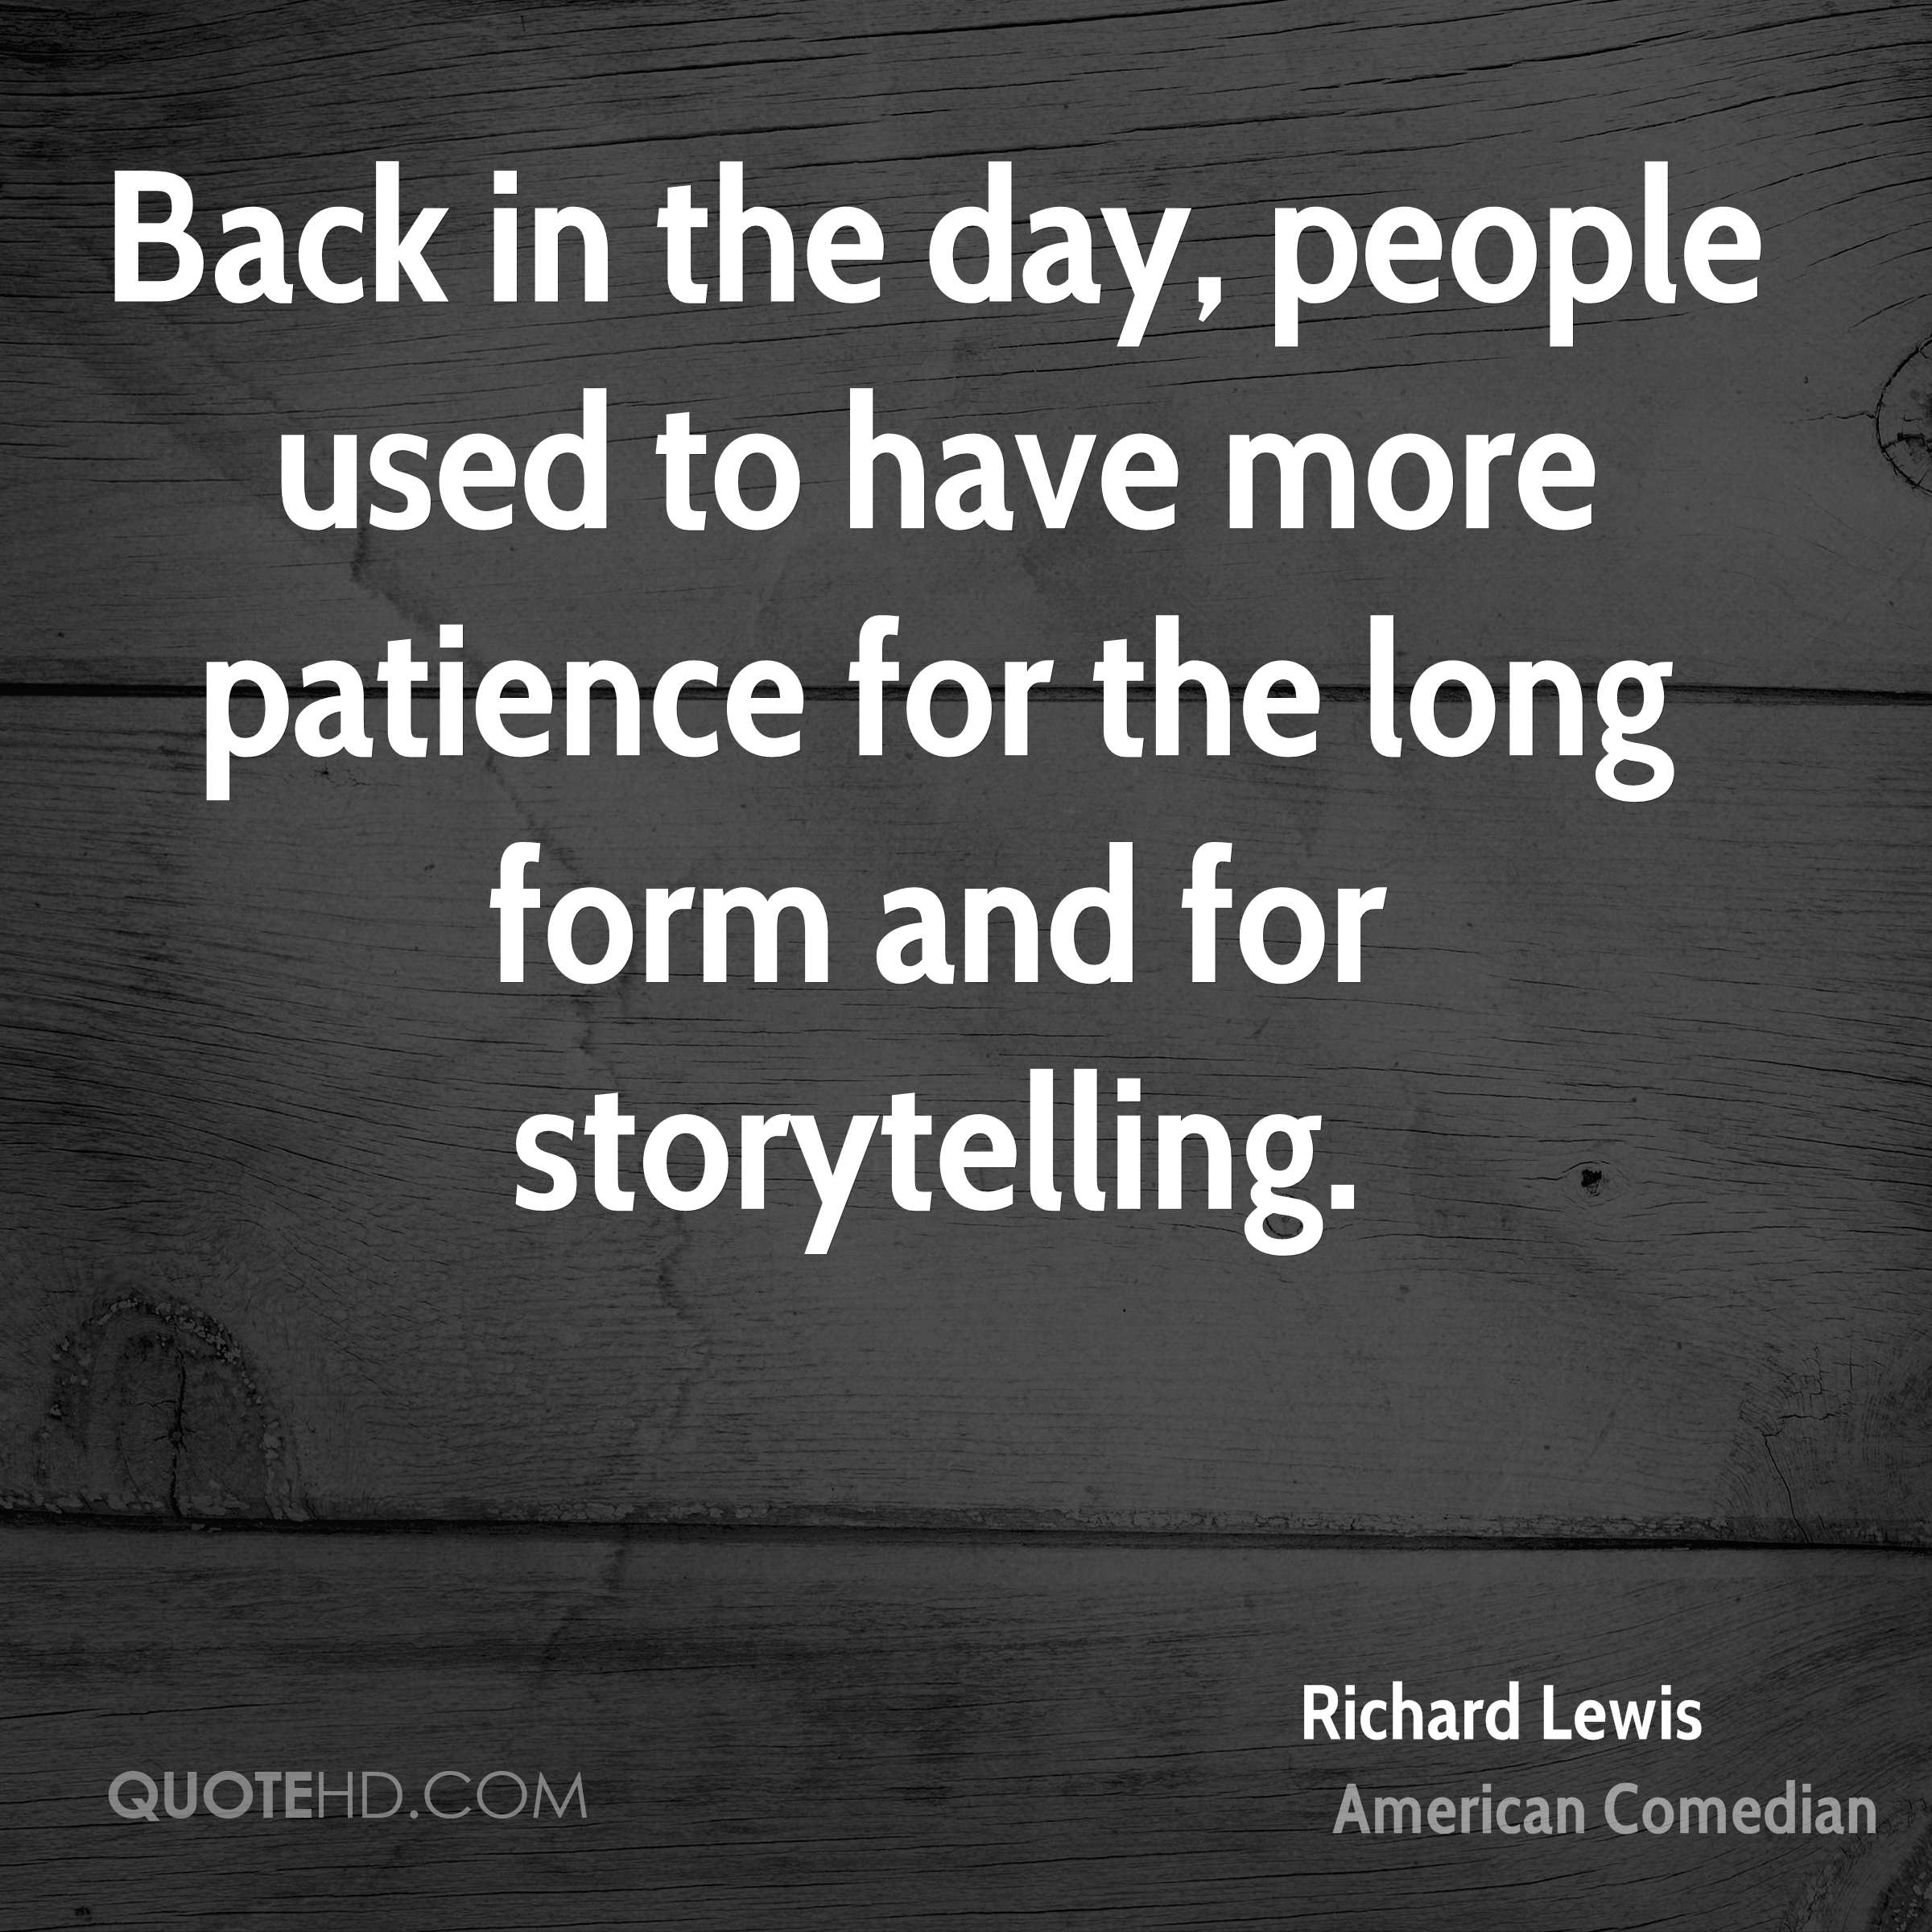 Back in the day, people used to have more patience for the long form and for storytelling.